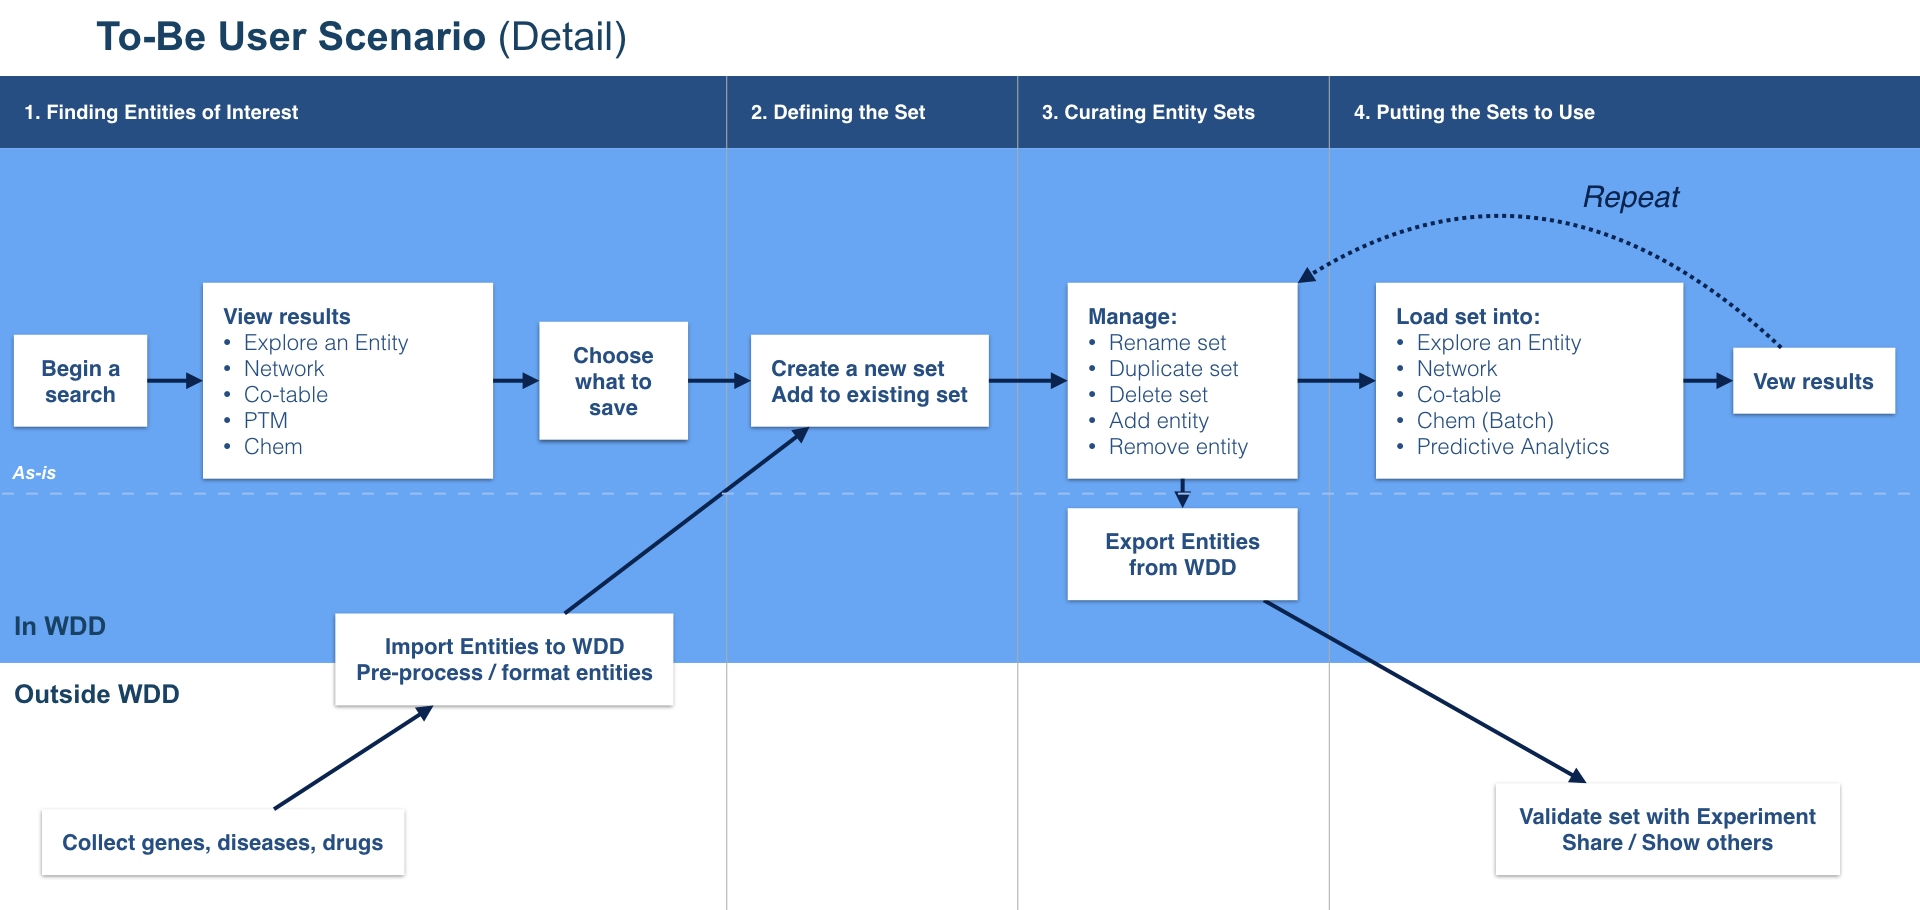 This Process Map shows an idea of what the streamlined future process (now implemented) could look like.